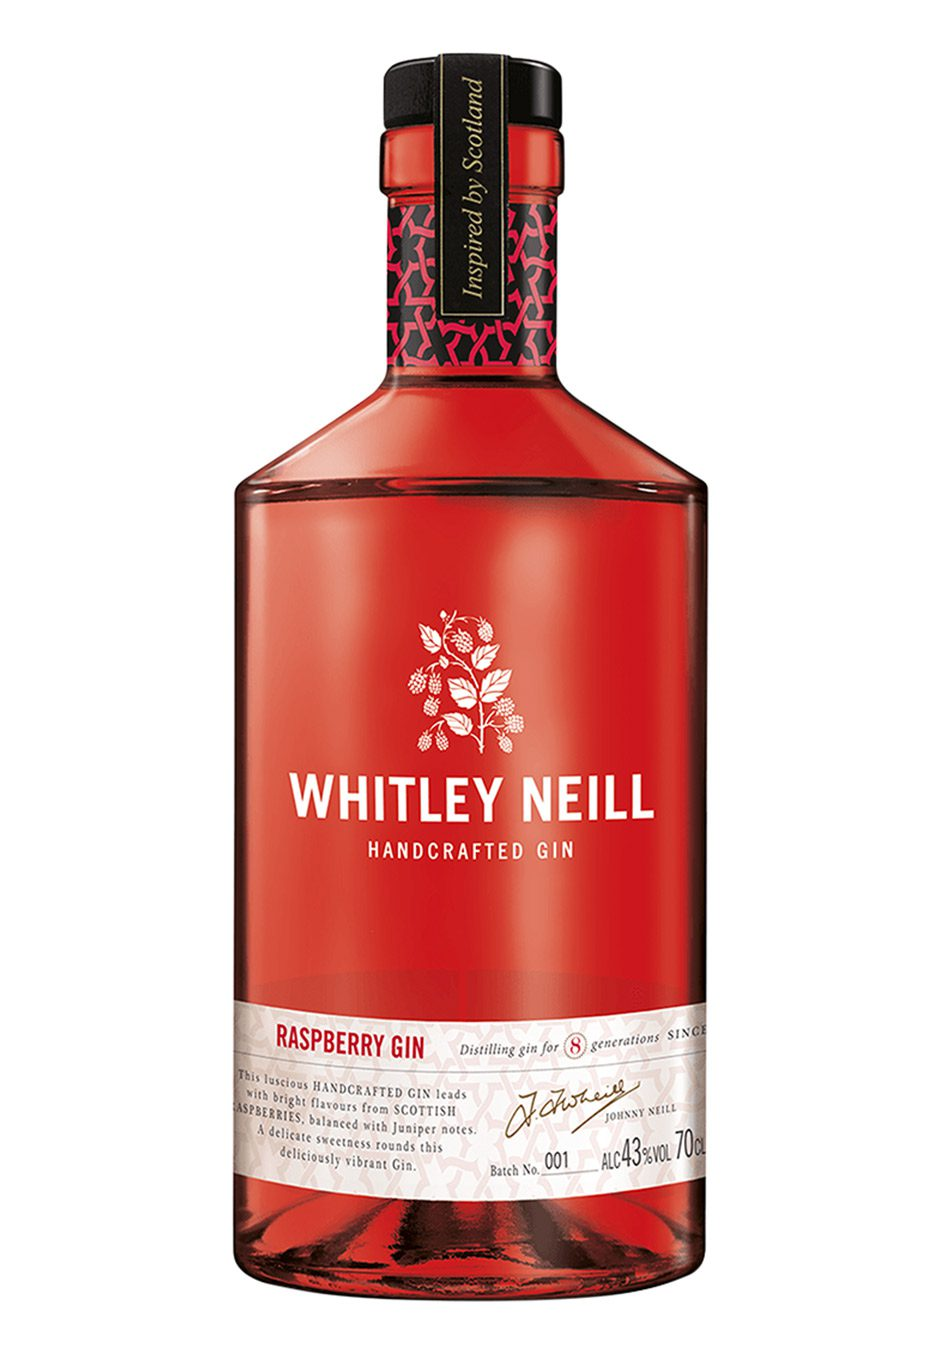 Whitley Neill Raspberry | Handcrafted Gin